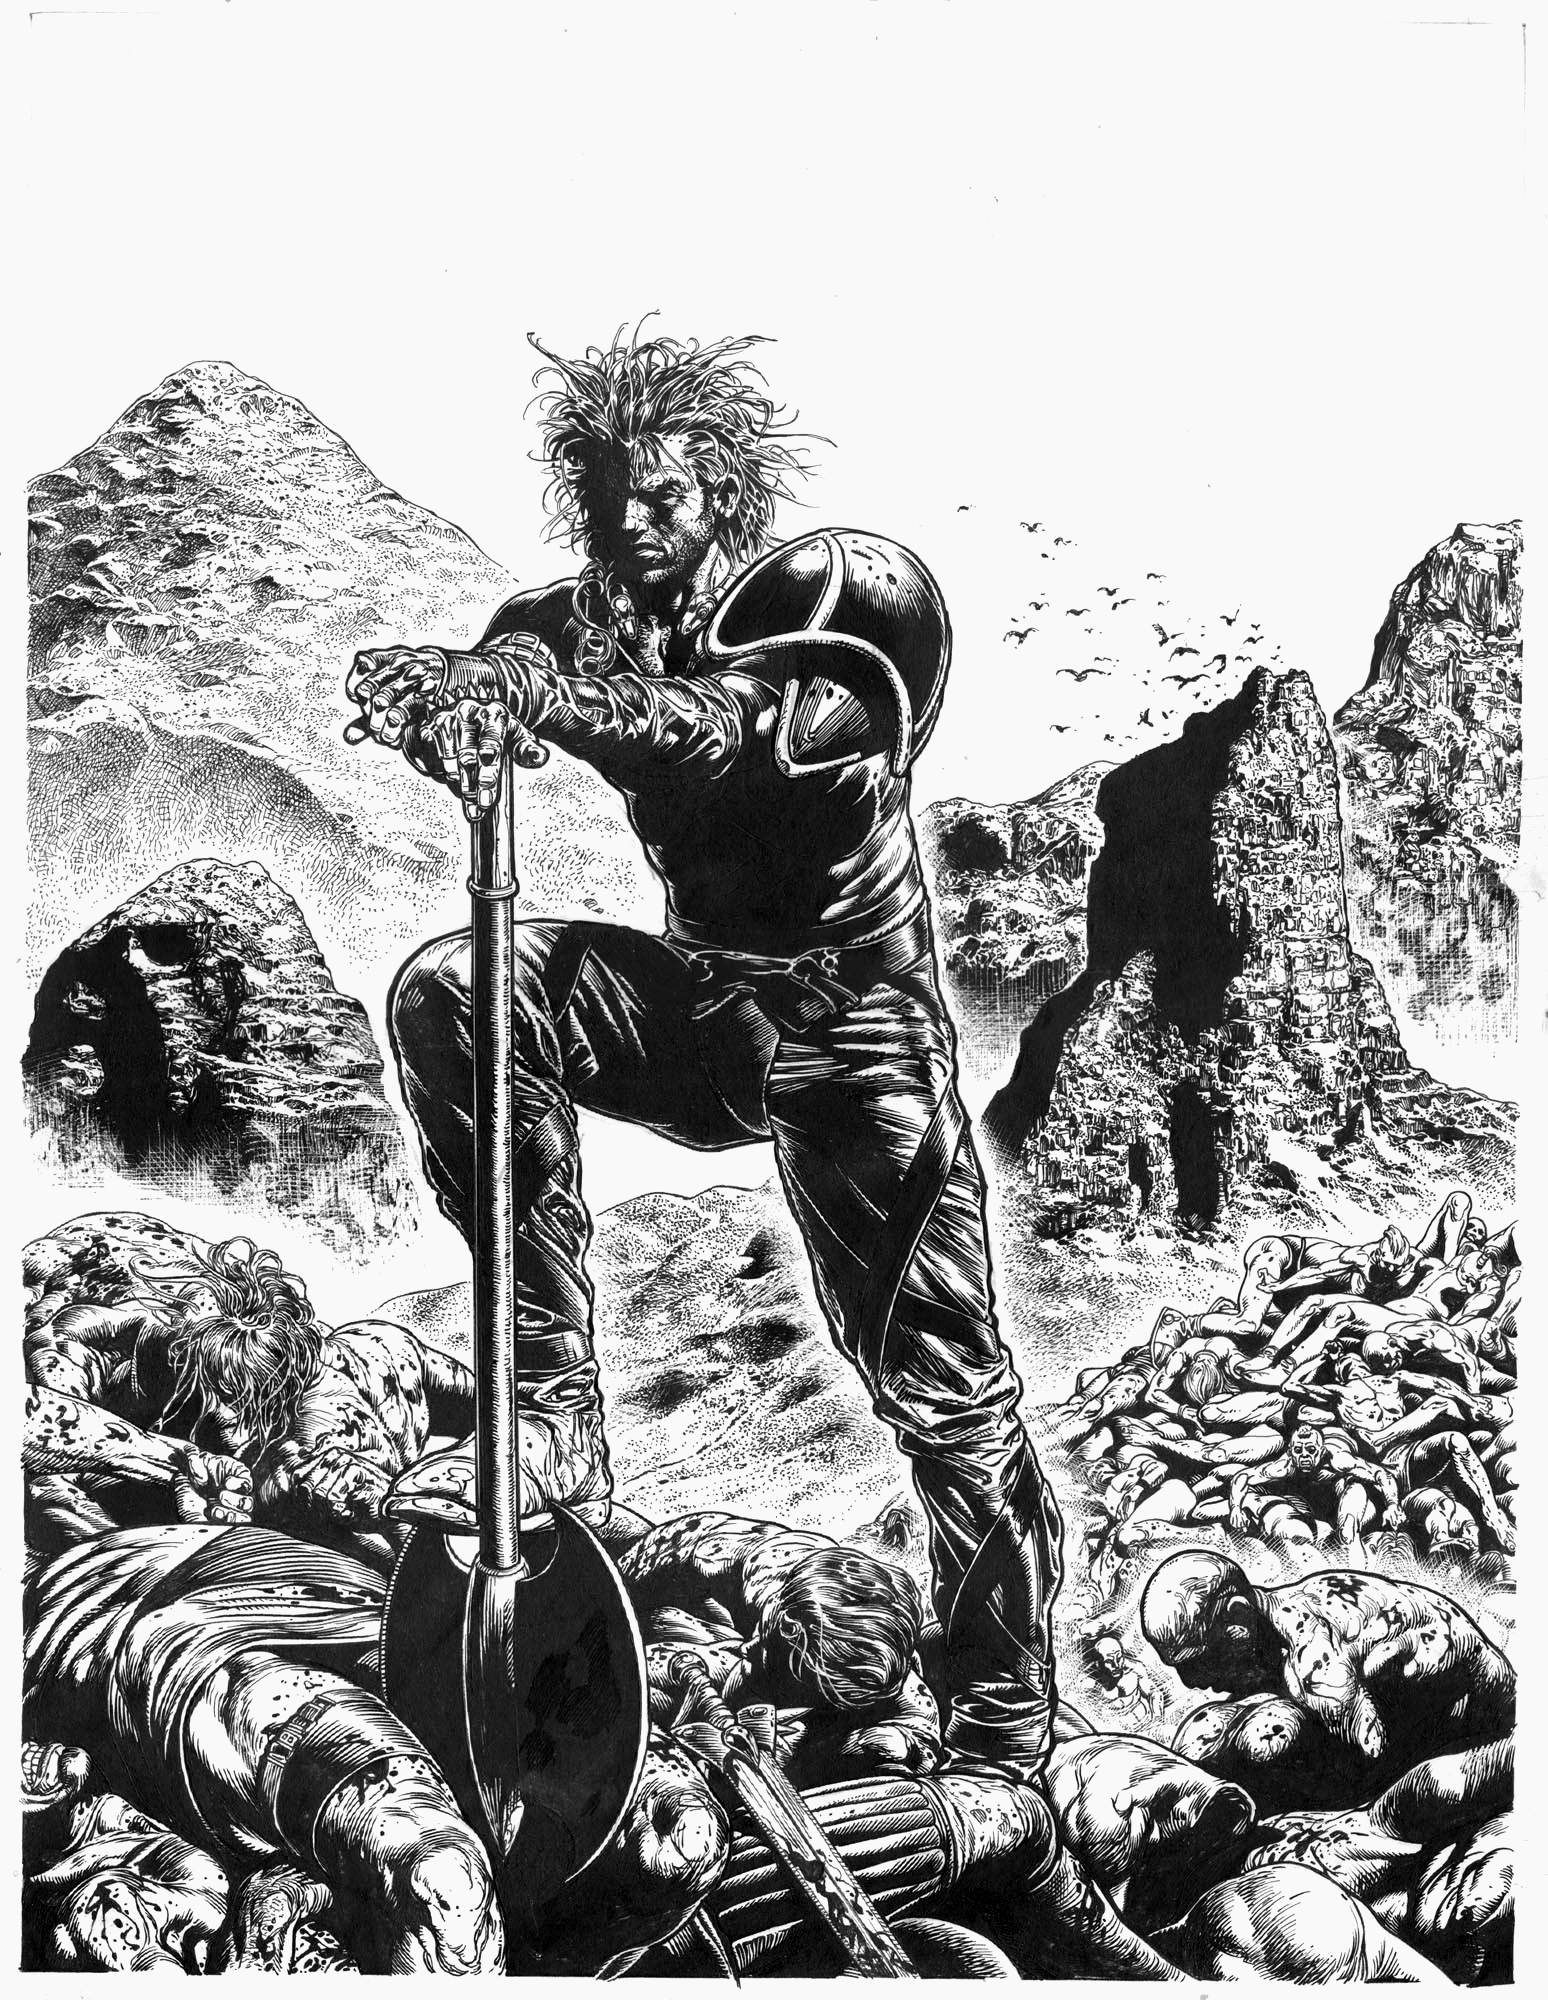 Slaine+by+Glenn+Fabry he didn't think it too many